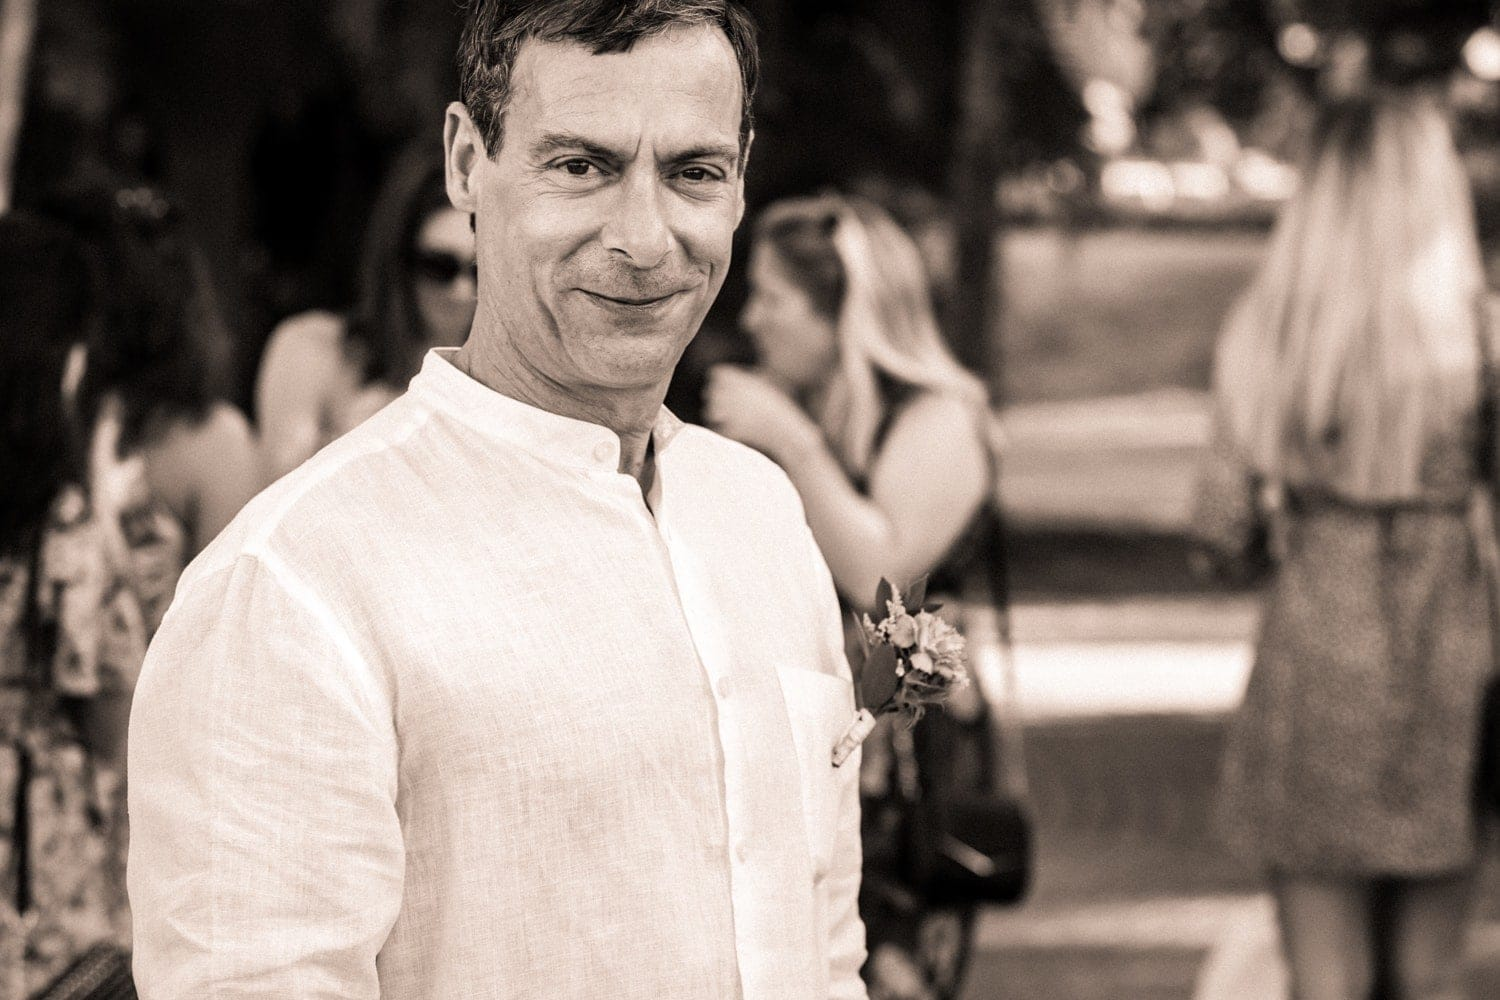 Black and white photo of groom waiting for bride.